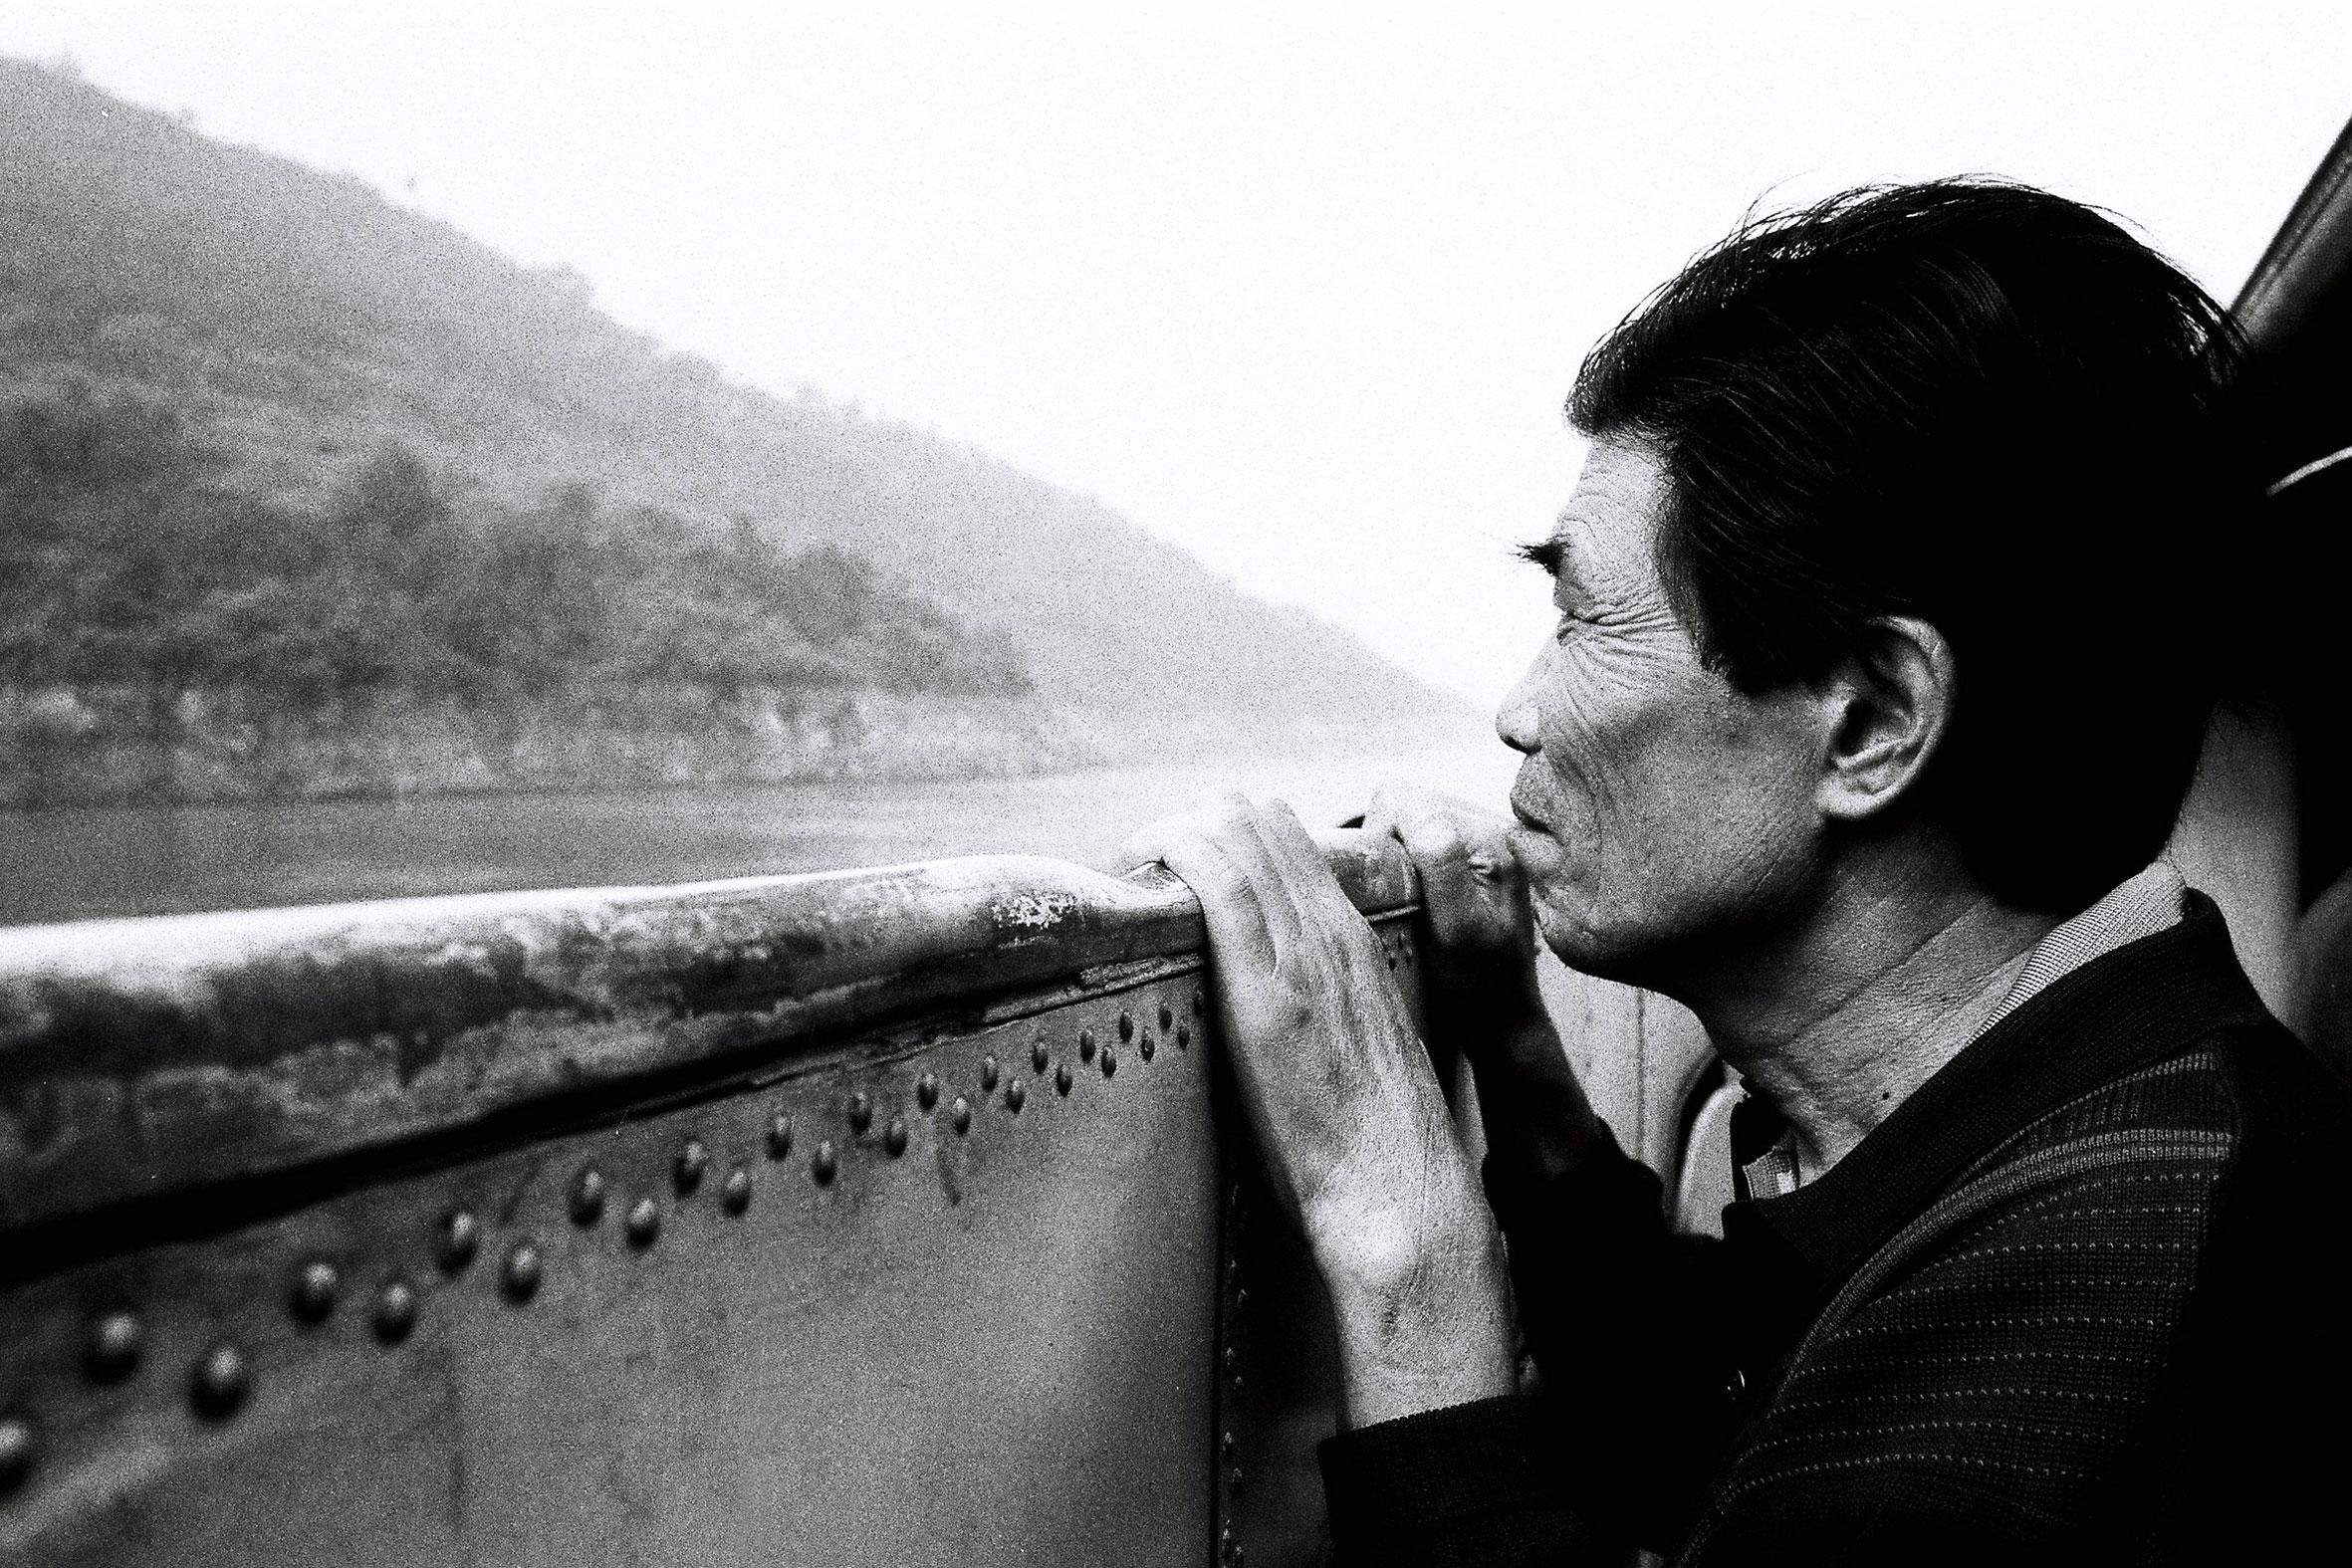 Yangtze River black & white